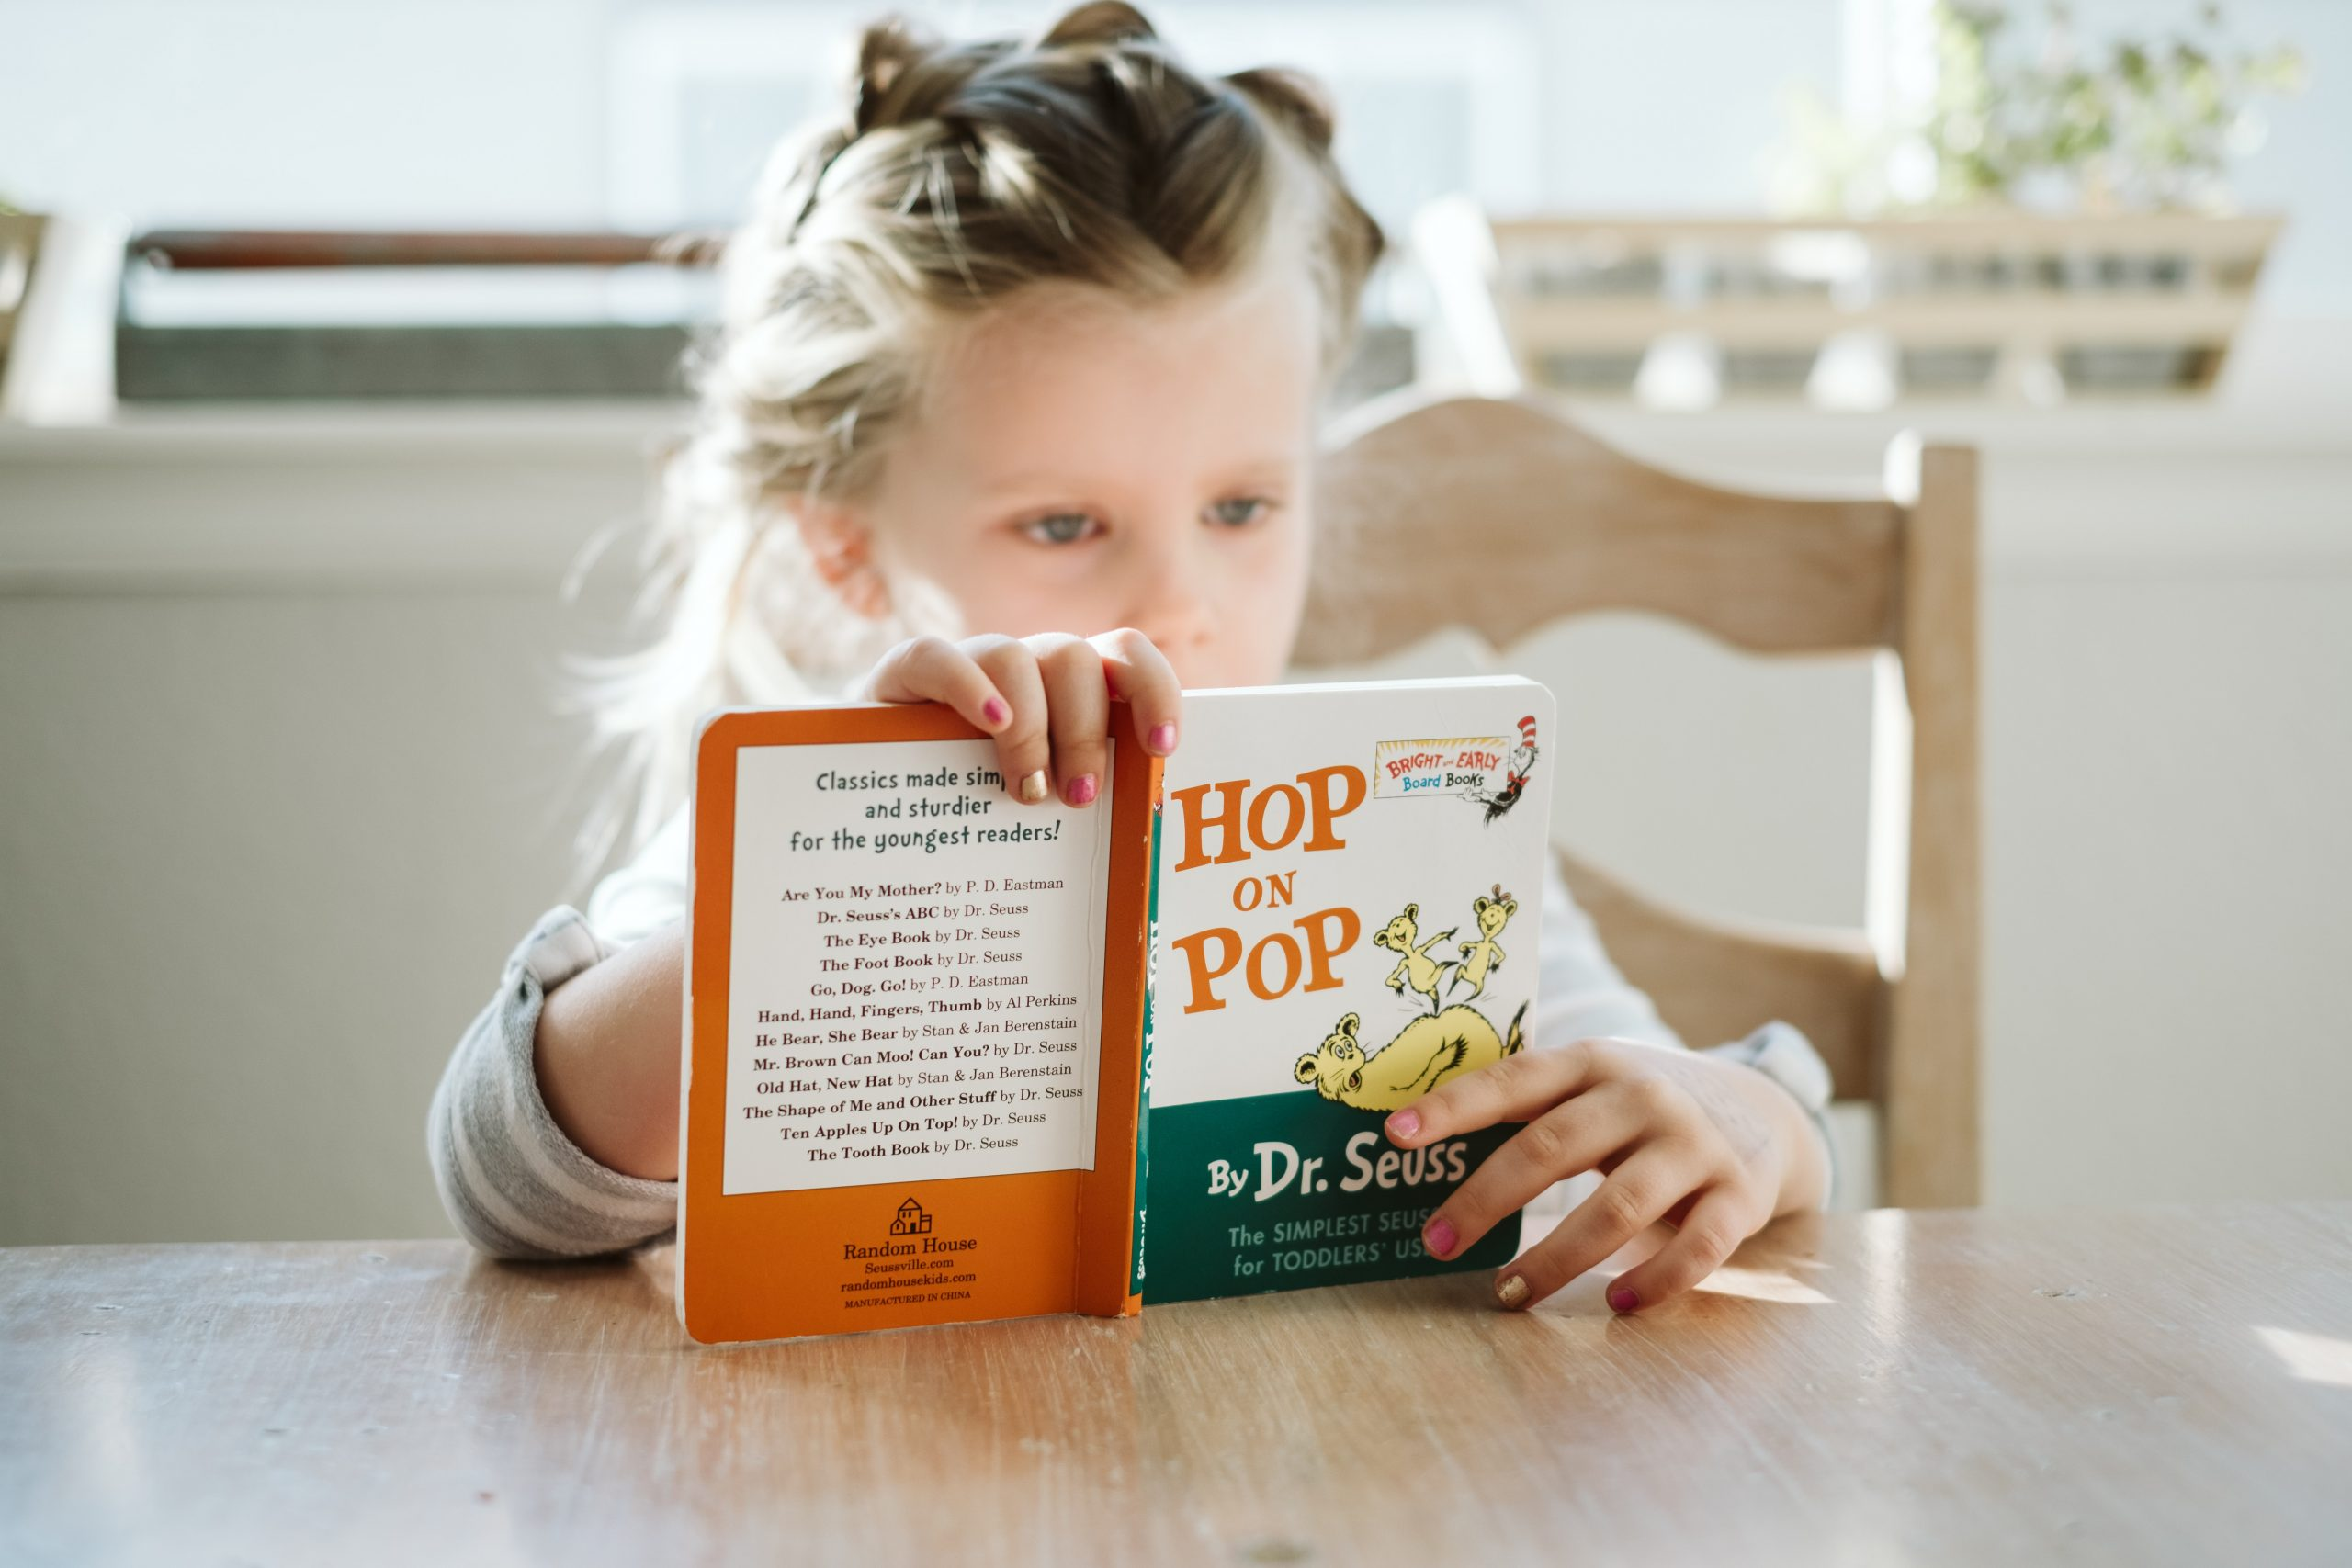 A child reads Hop on Pop by Dr. Seuss